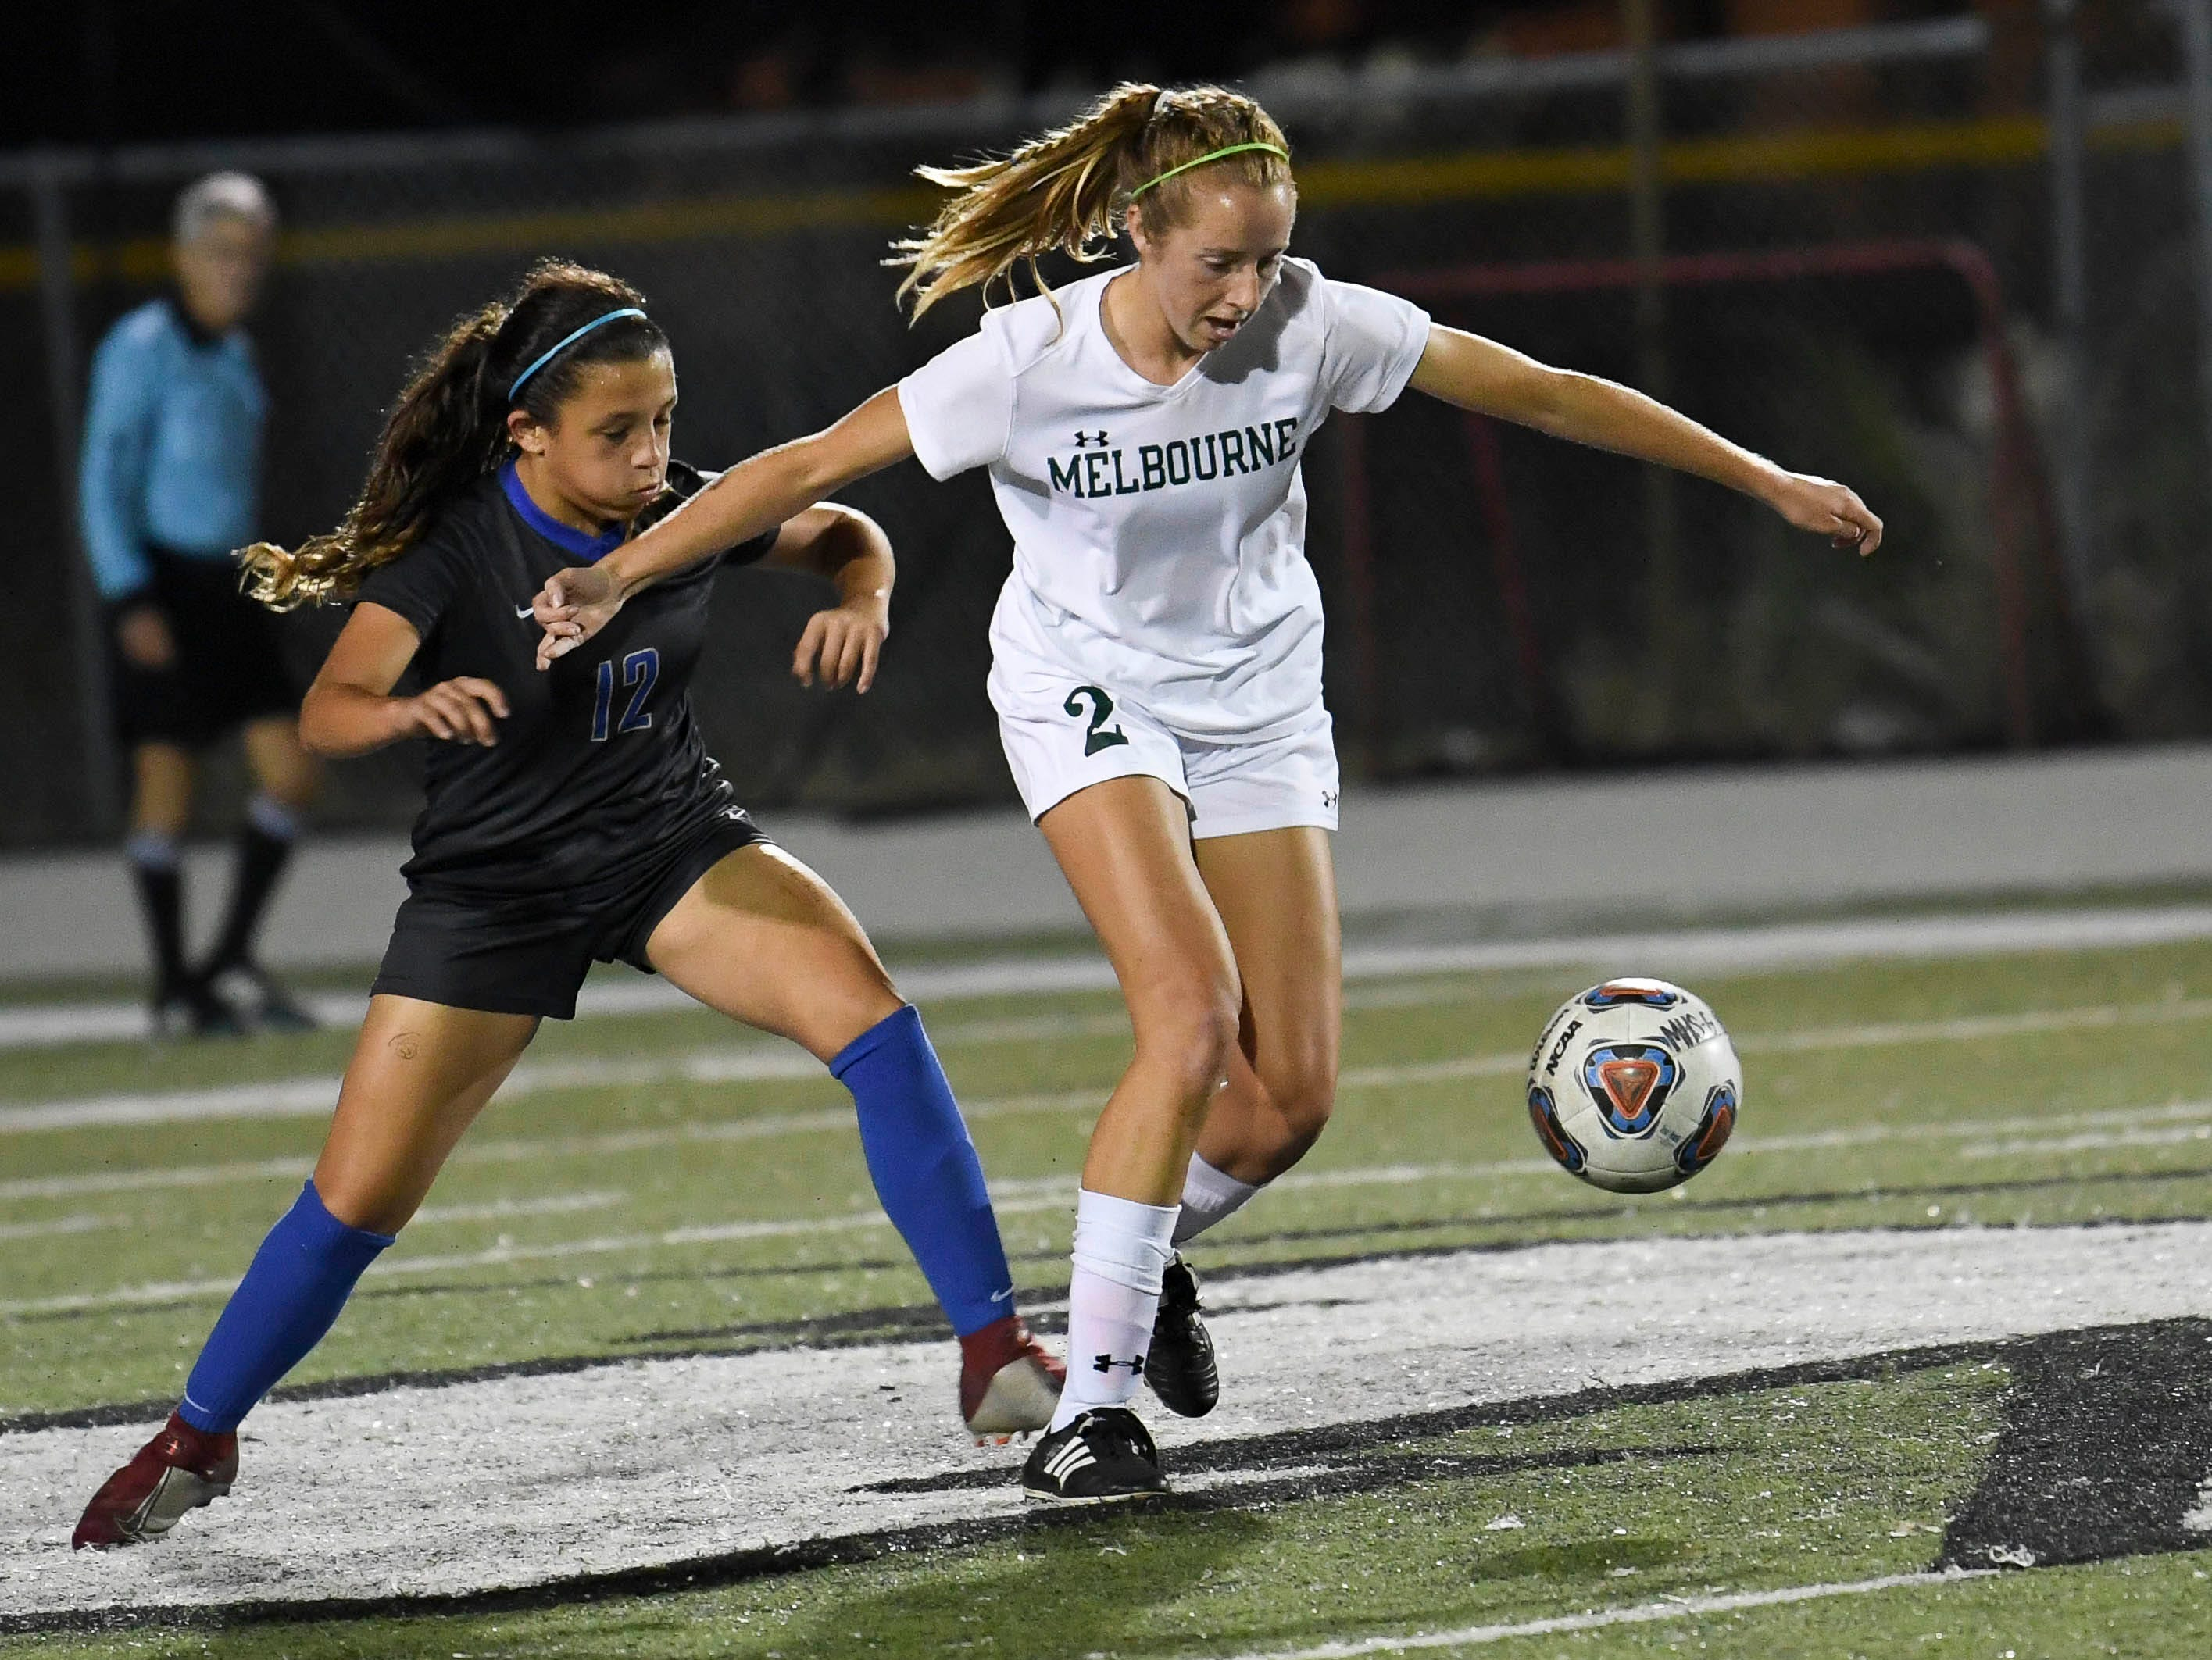 Melbourne's Lindsay Baldwin battles with Barbara Garcia of Cypress Bay during Thursday's game in Melbourne